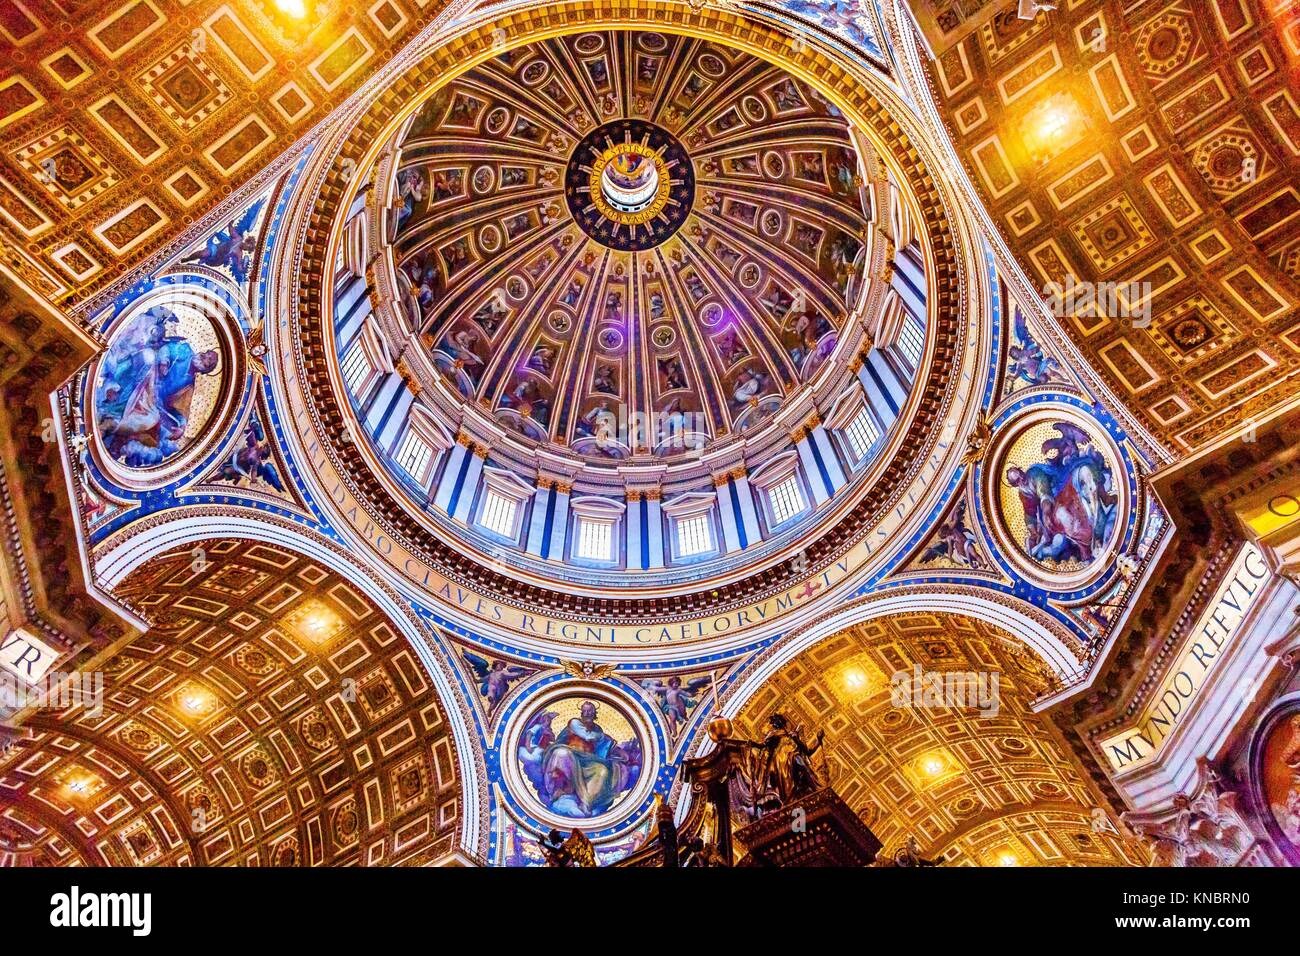 Michelangeolo Dome Saint Peter's Basilica Vatican Rome Italy. Dome built in 1600s over altar and St. Peter's - Stock Image